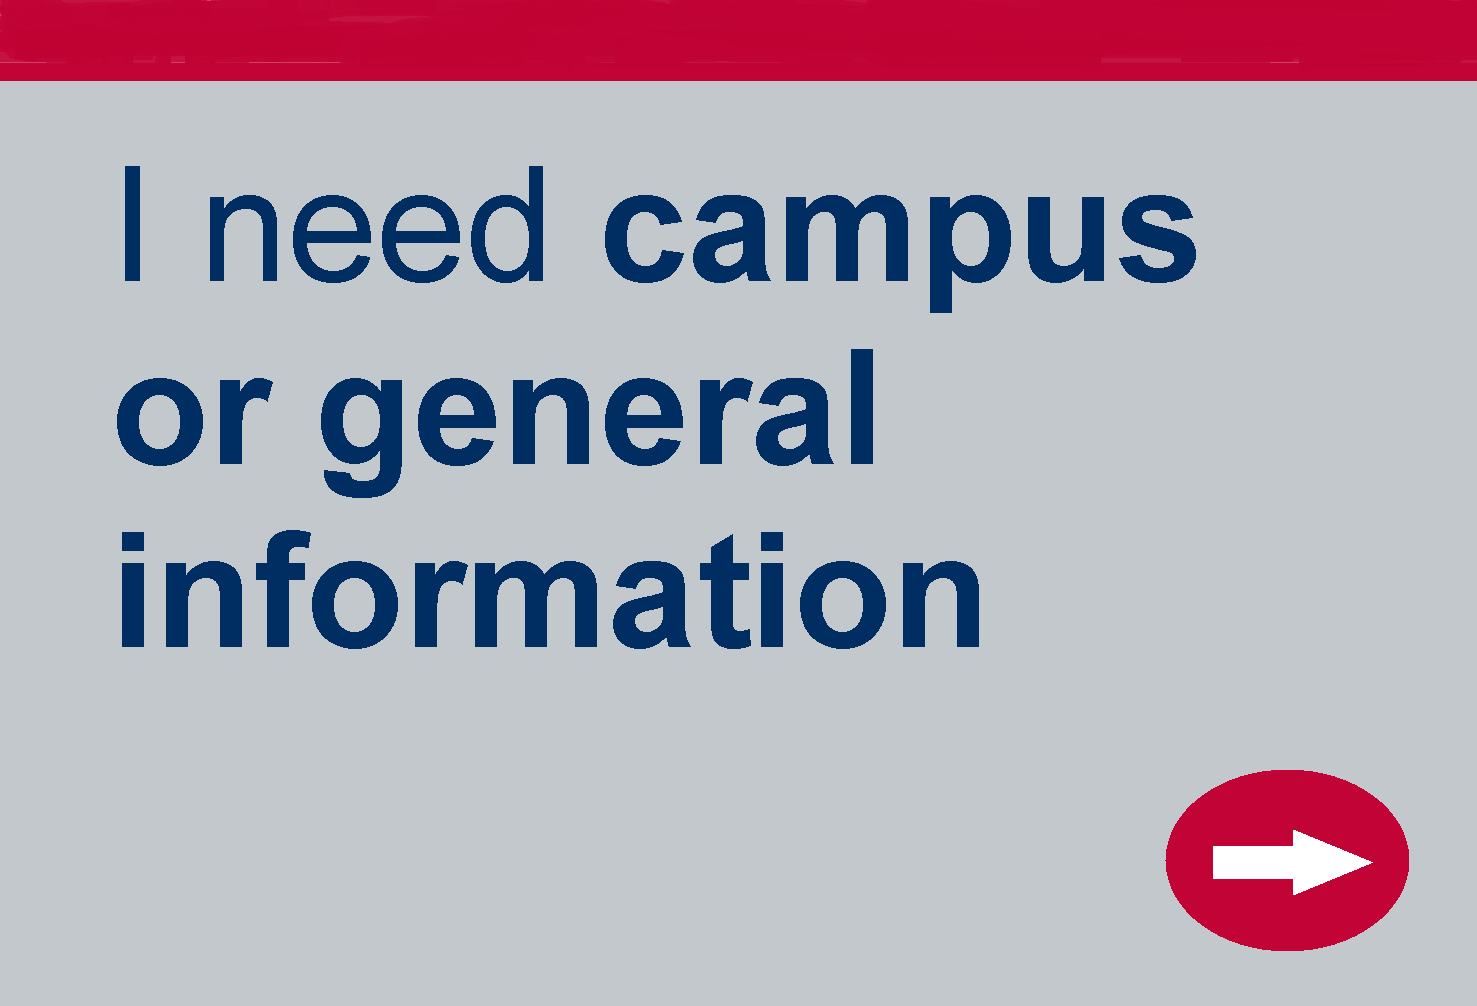 Need campus or general information